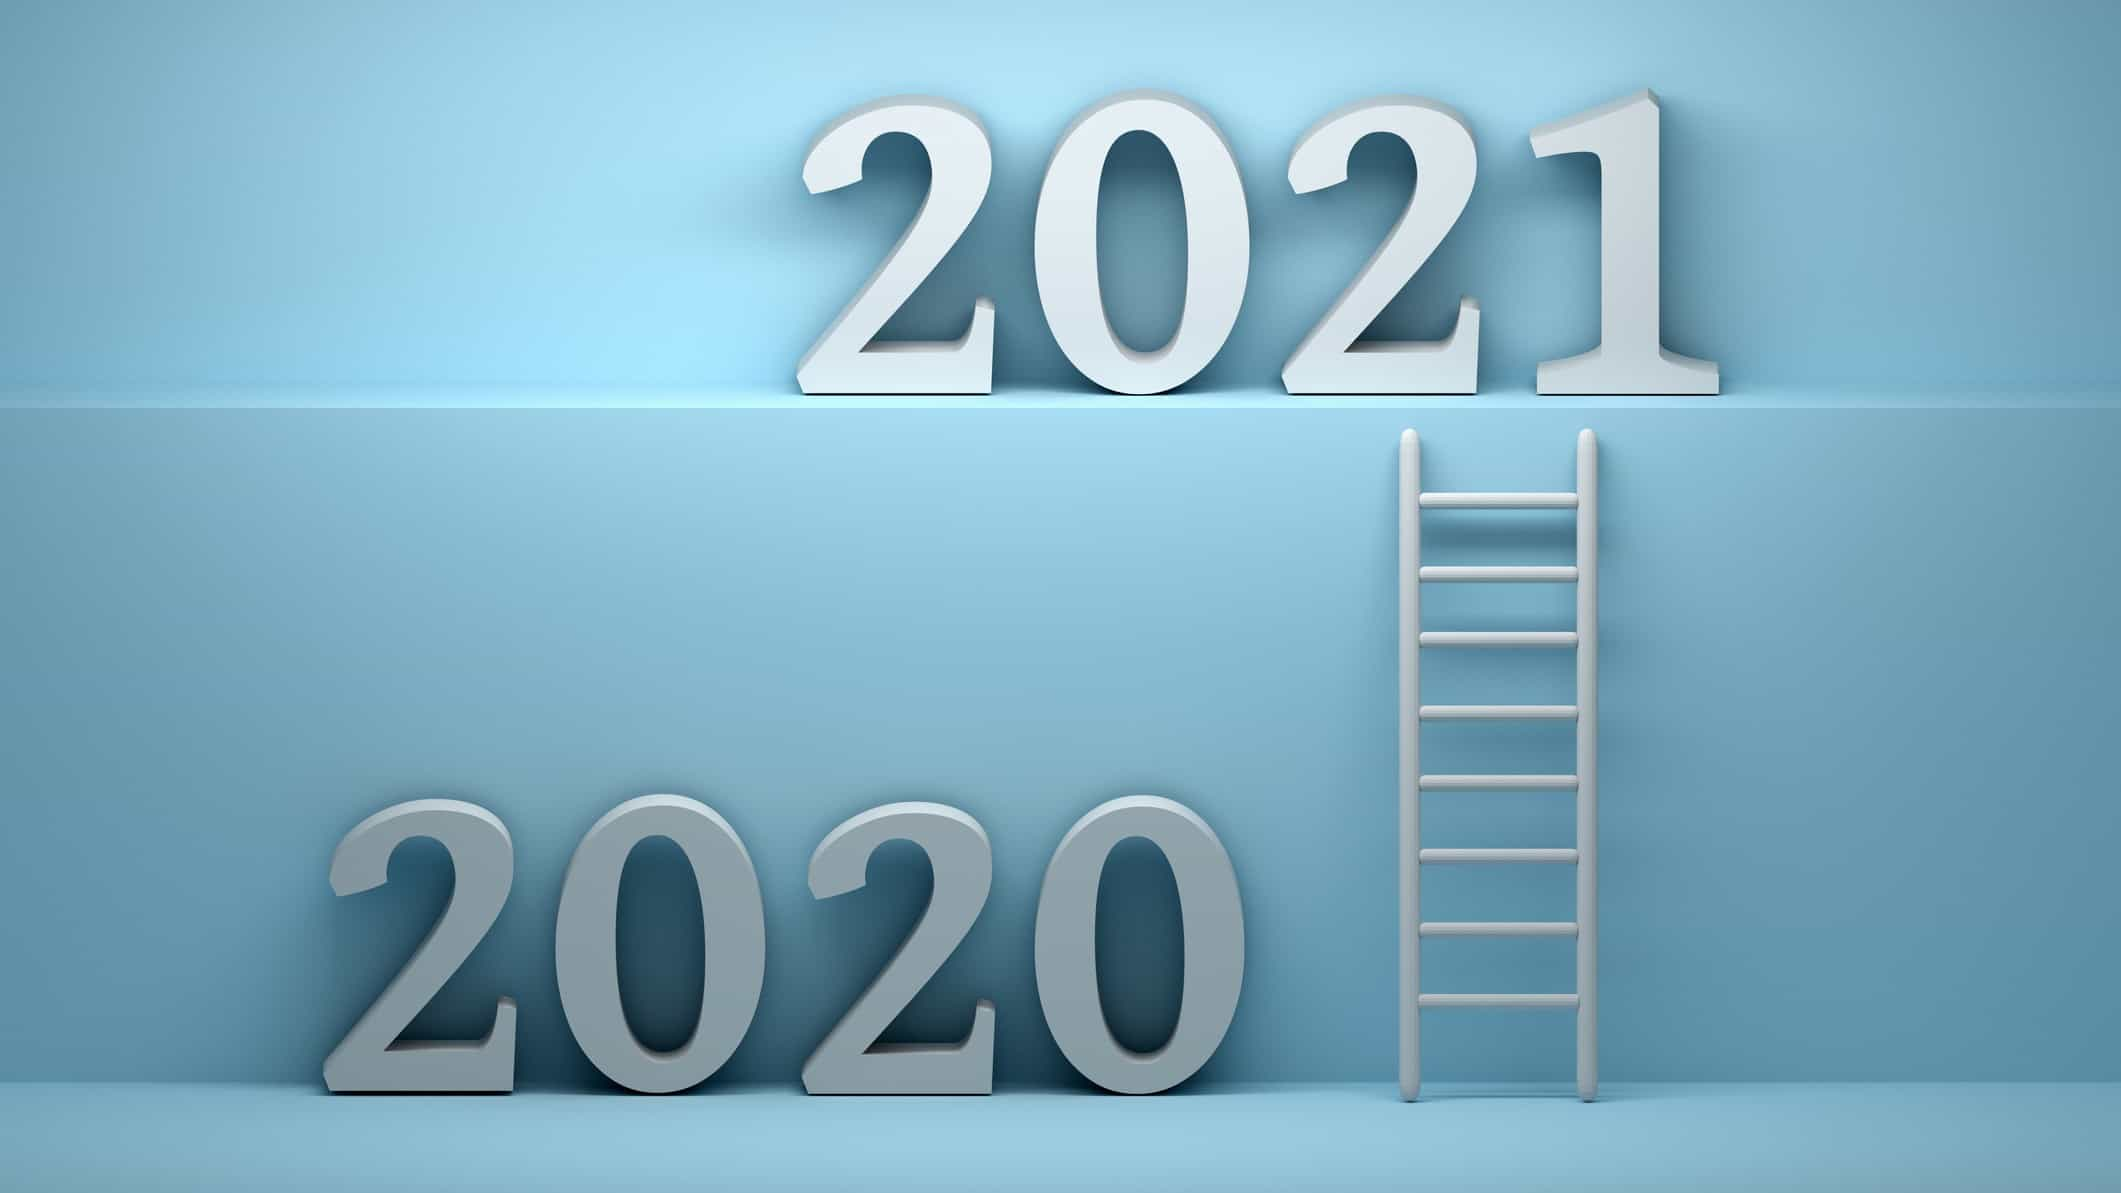 ladder positioned between the numerals 2020 and 2021